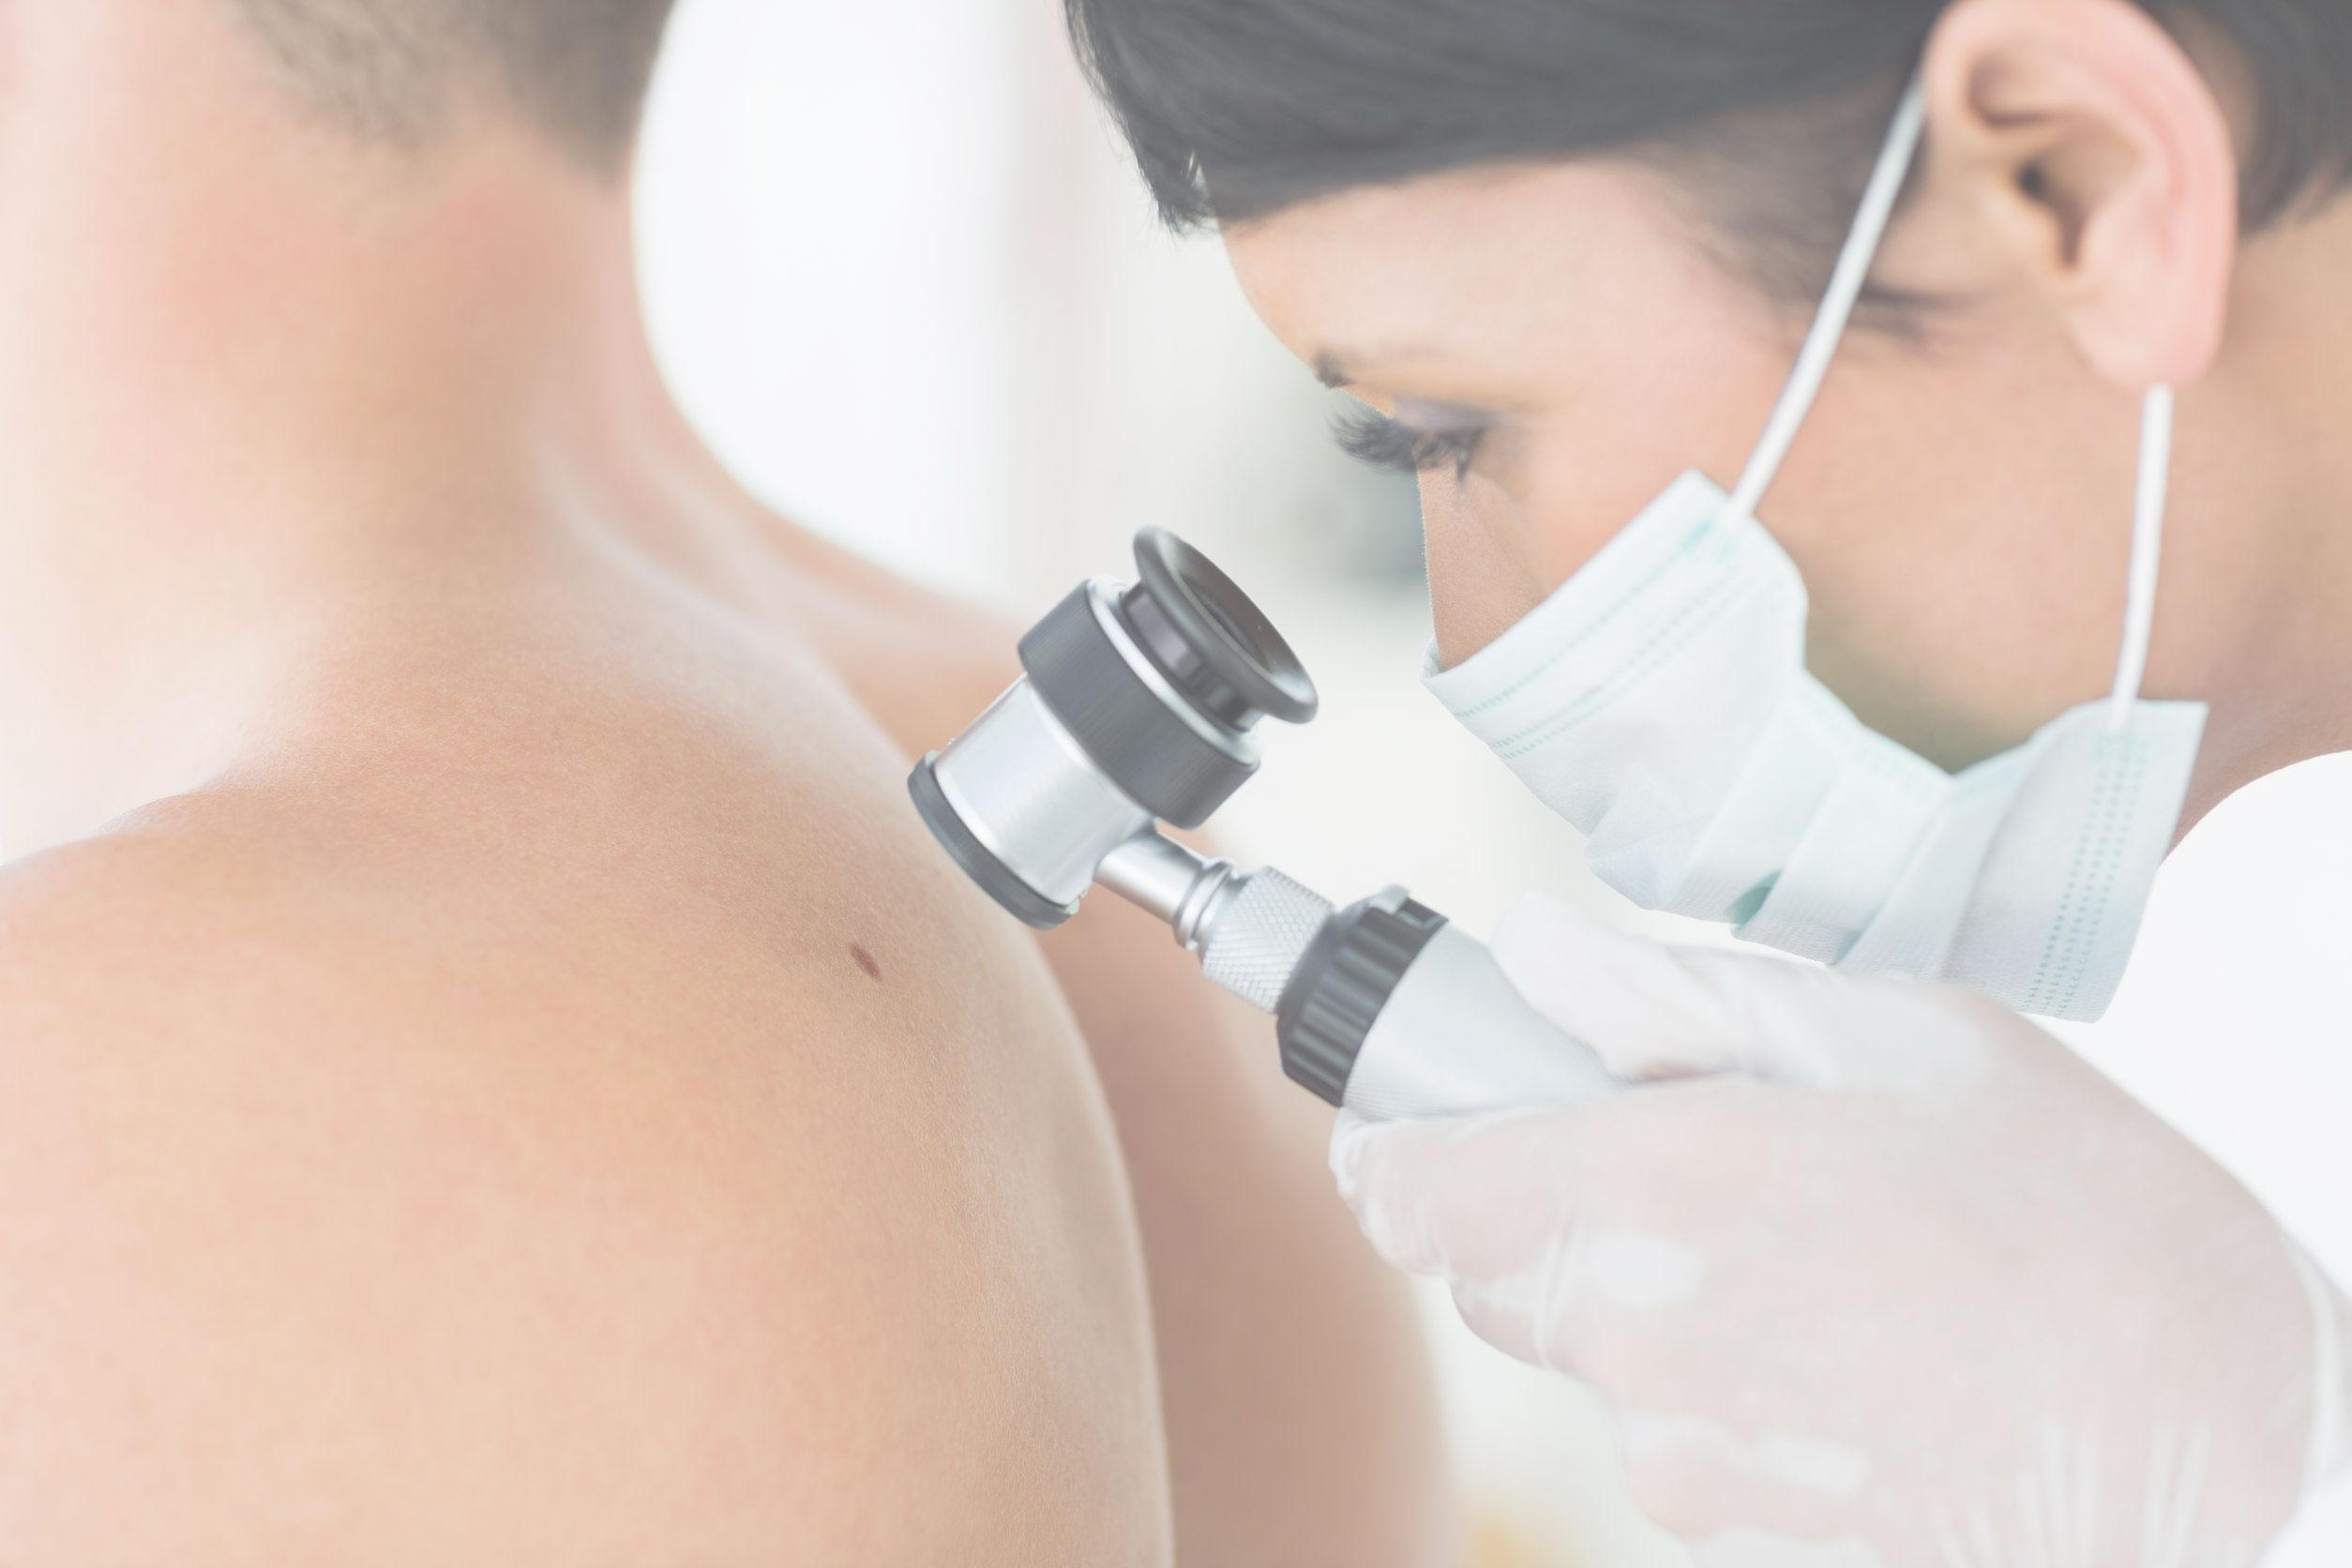 schedule-your-in-home-mobile-skin-screening-appointment-in-phoenix-az-with-experienced-dermatology-practictioners